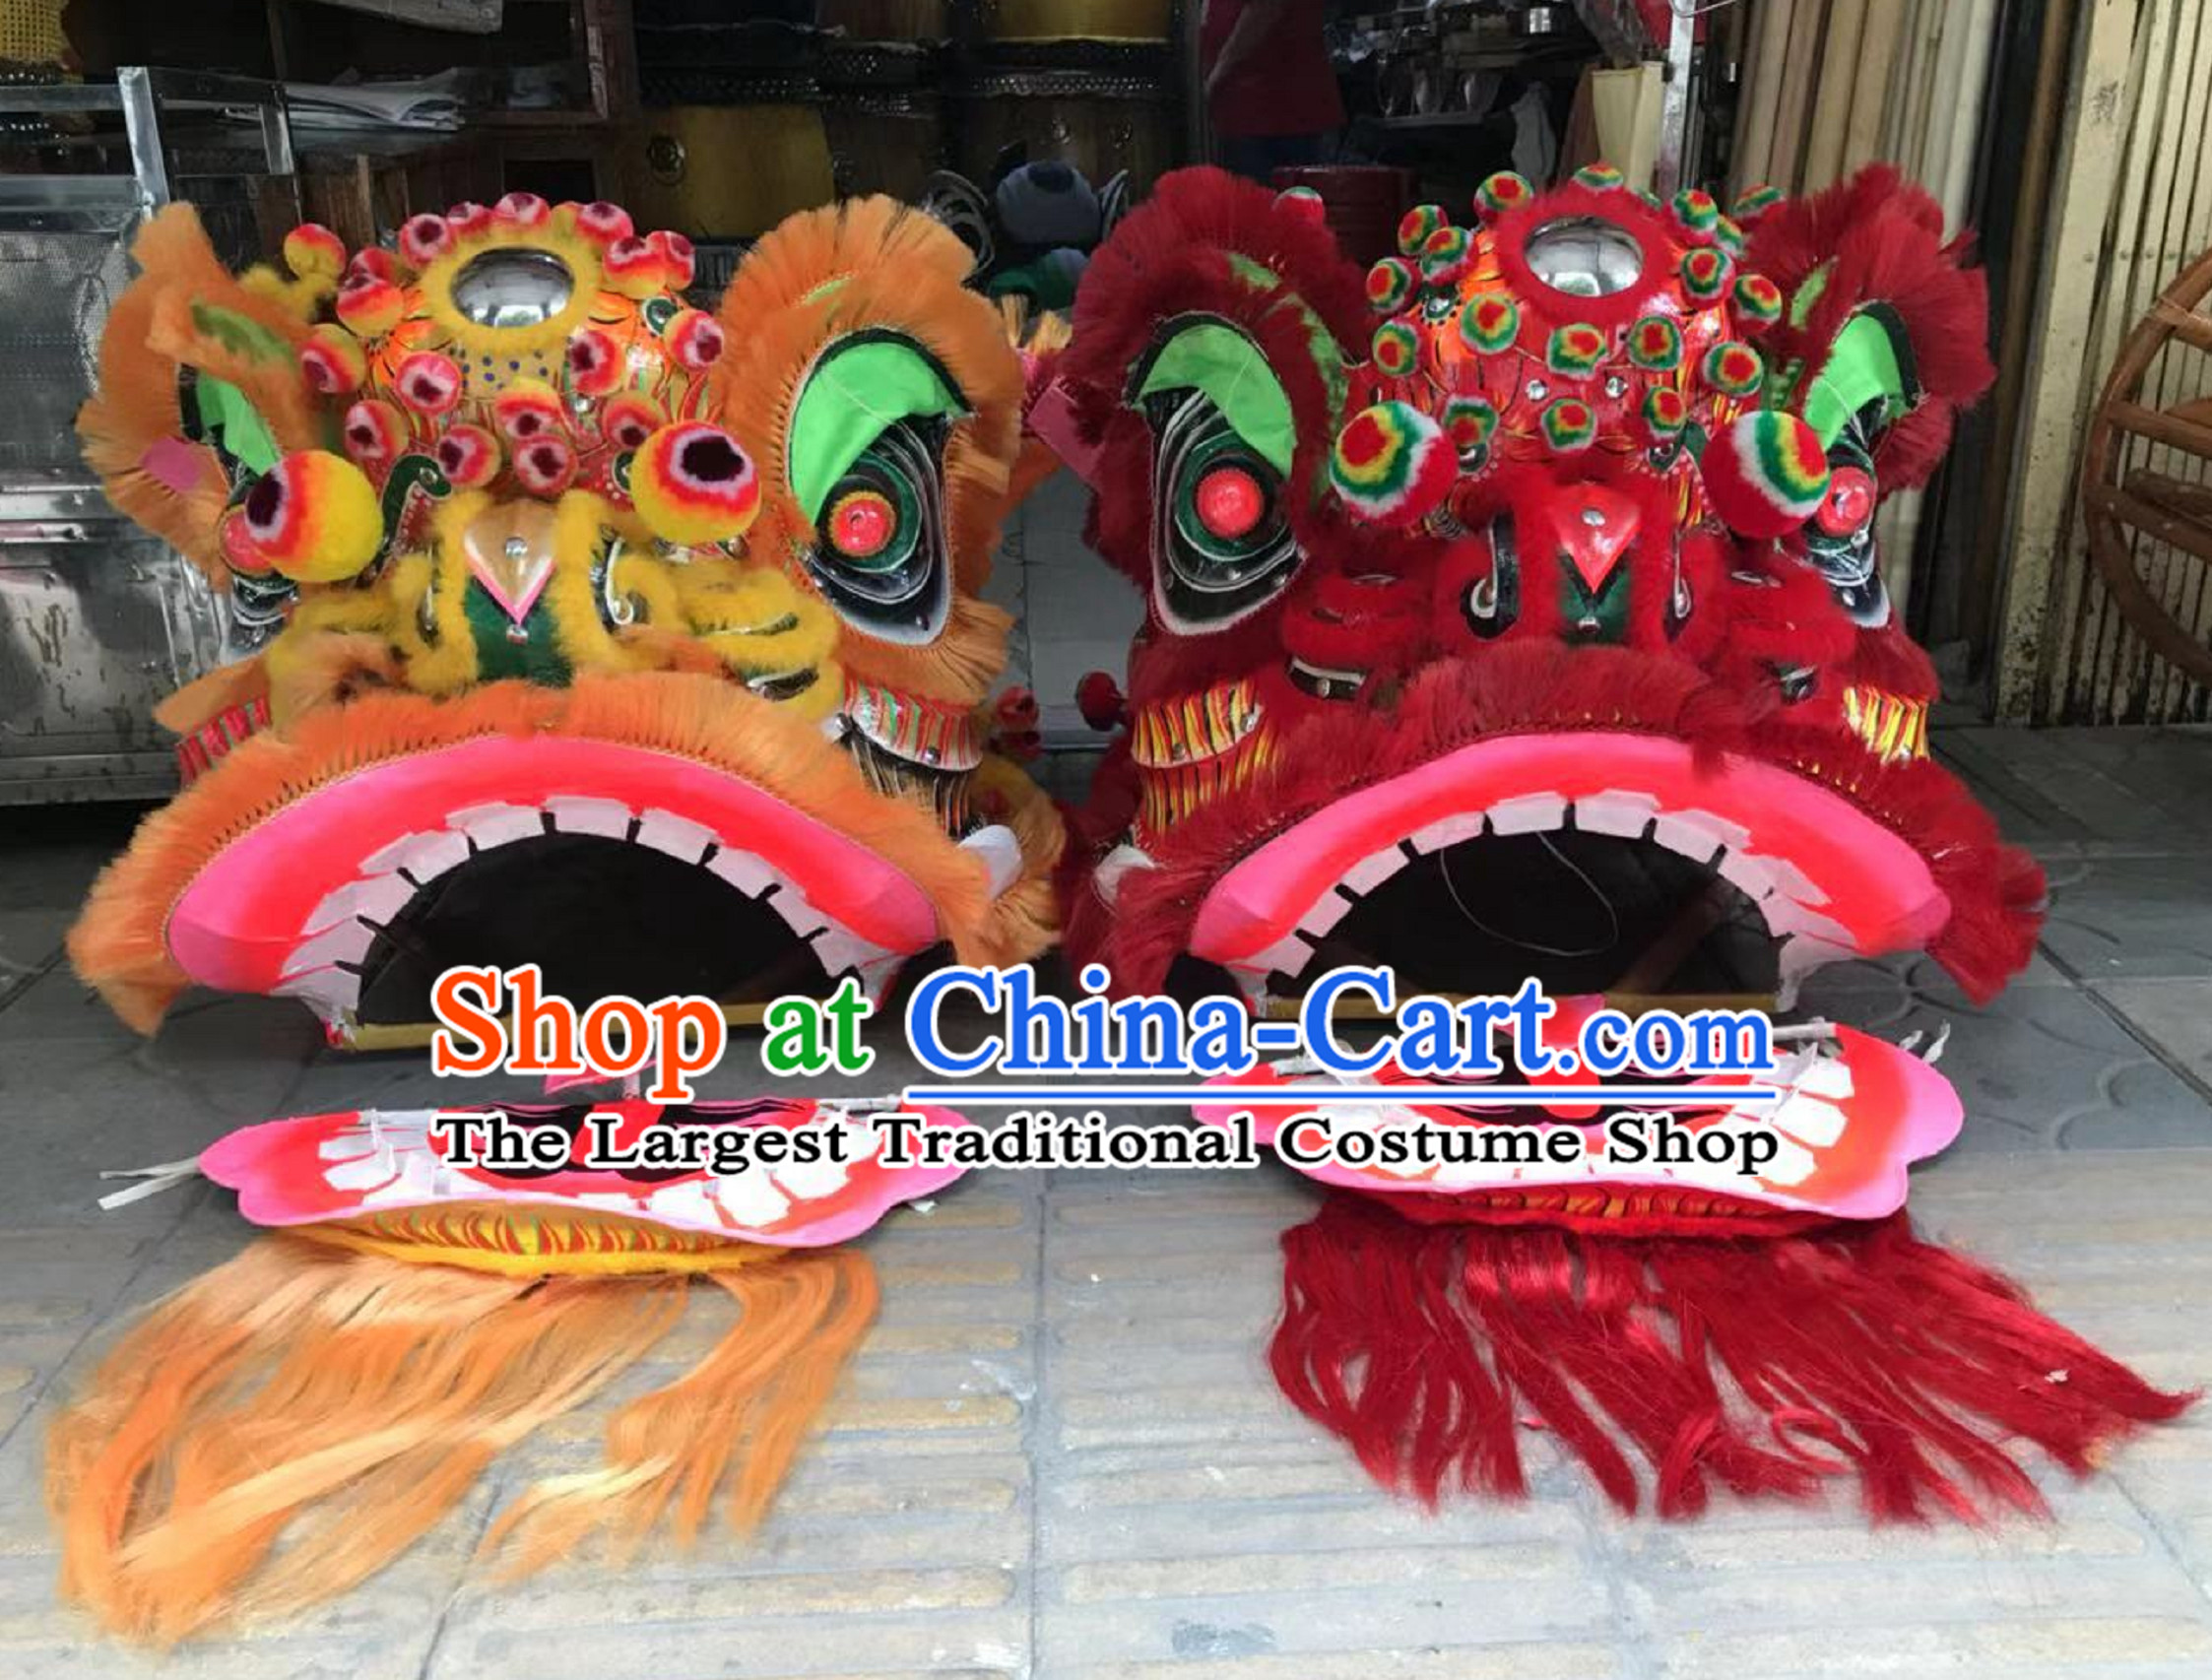 Traditional Fut San Lion Dance Costume 2 Complete Sets